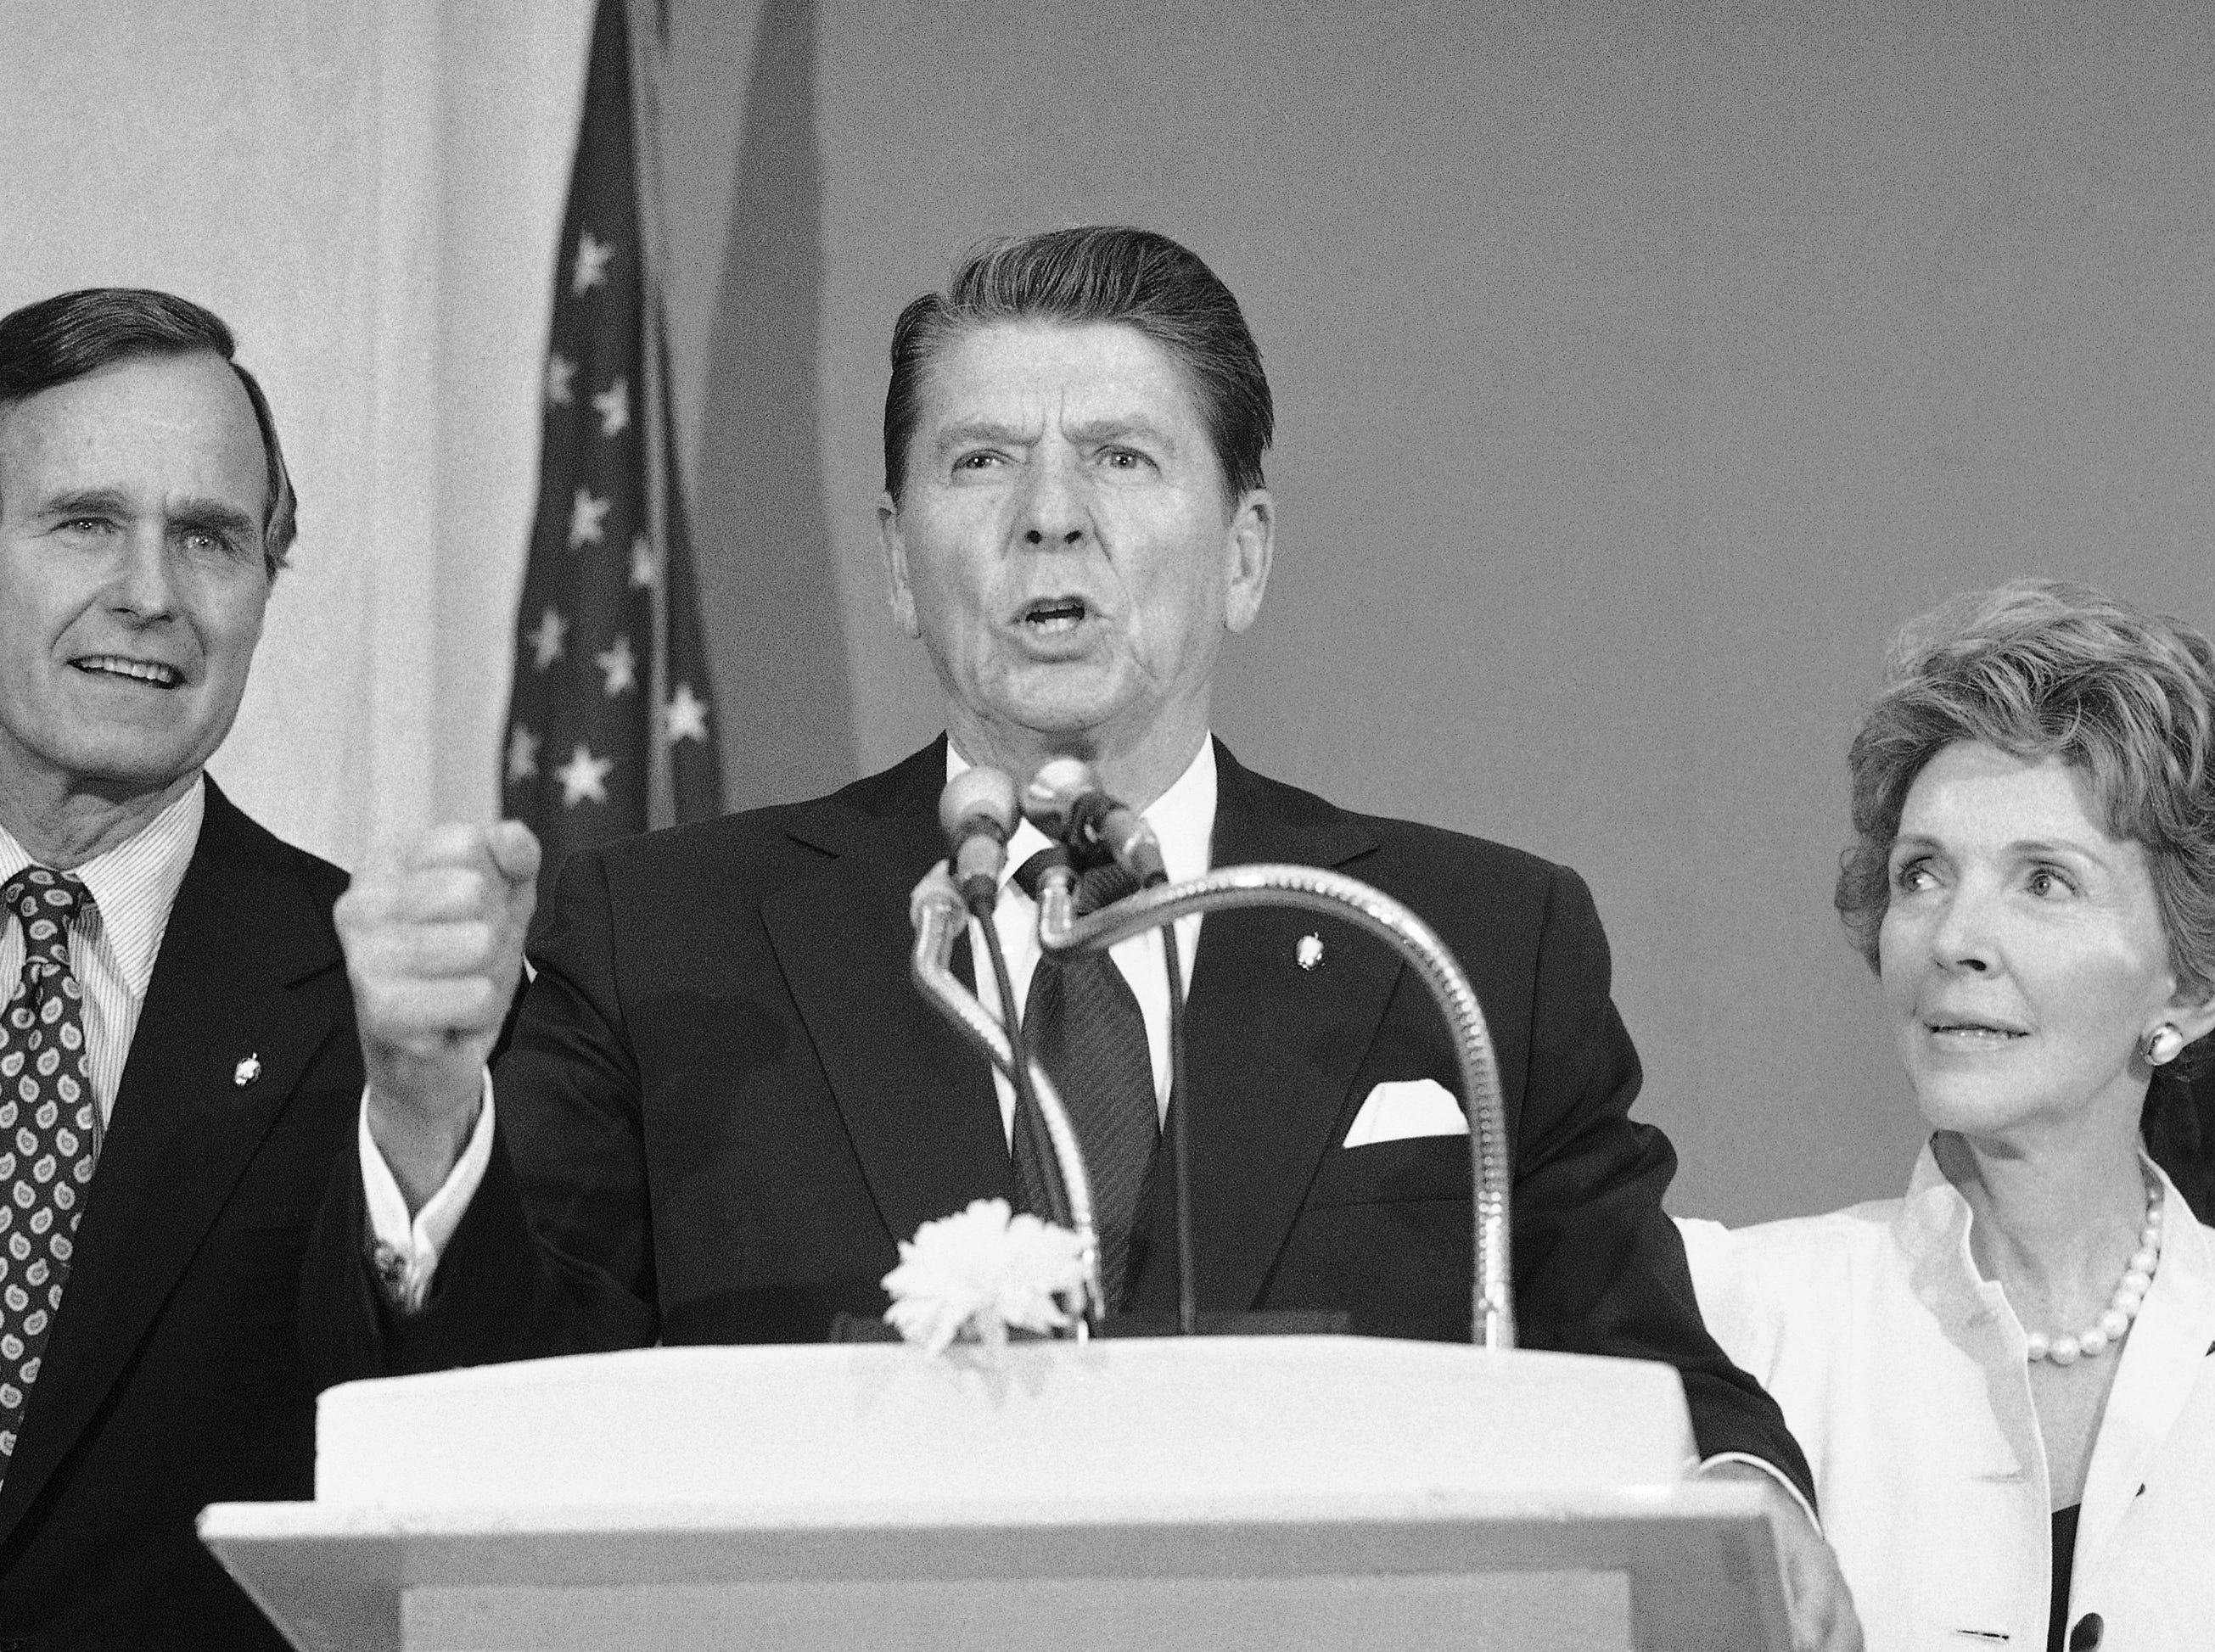 Presidential hopeful Ronald Reagan, center, is flaked by his wife Nancy, and former opponent George Bush, as he delivers a speech at a reception in the New York Hotel Pierre on Monday, June 17, 1980 in New York. Reagan was in New York to meet with editorial boards and to continue his efforts to help his former Republican opponent pay off their campaign debts. (AP Photo/Lederhandler)